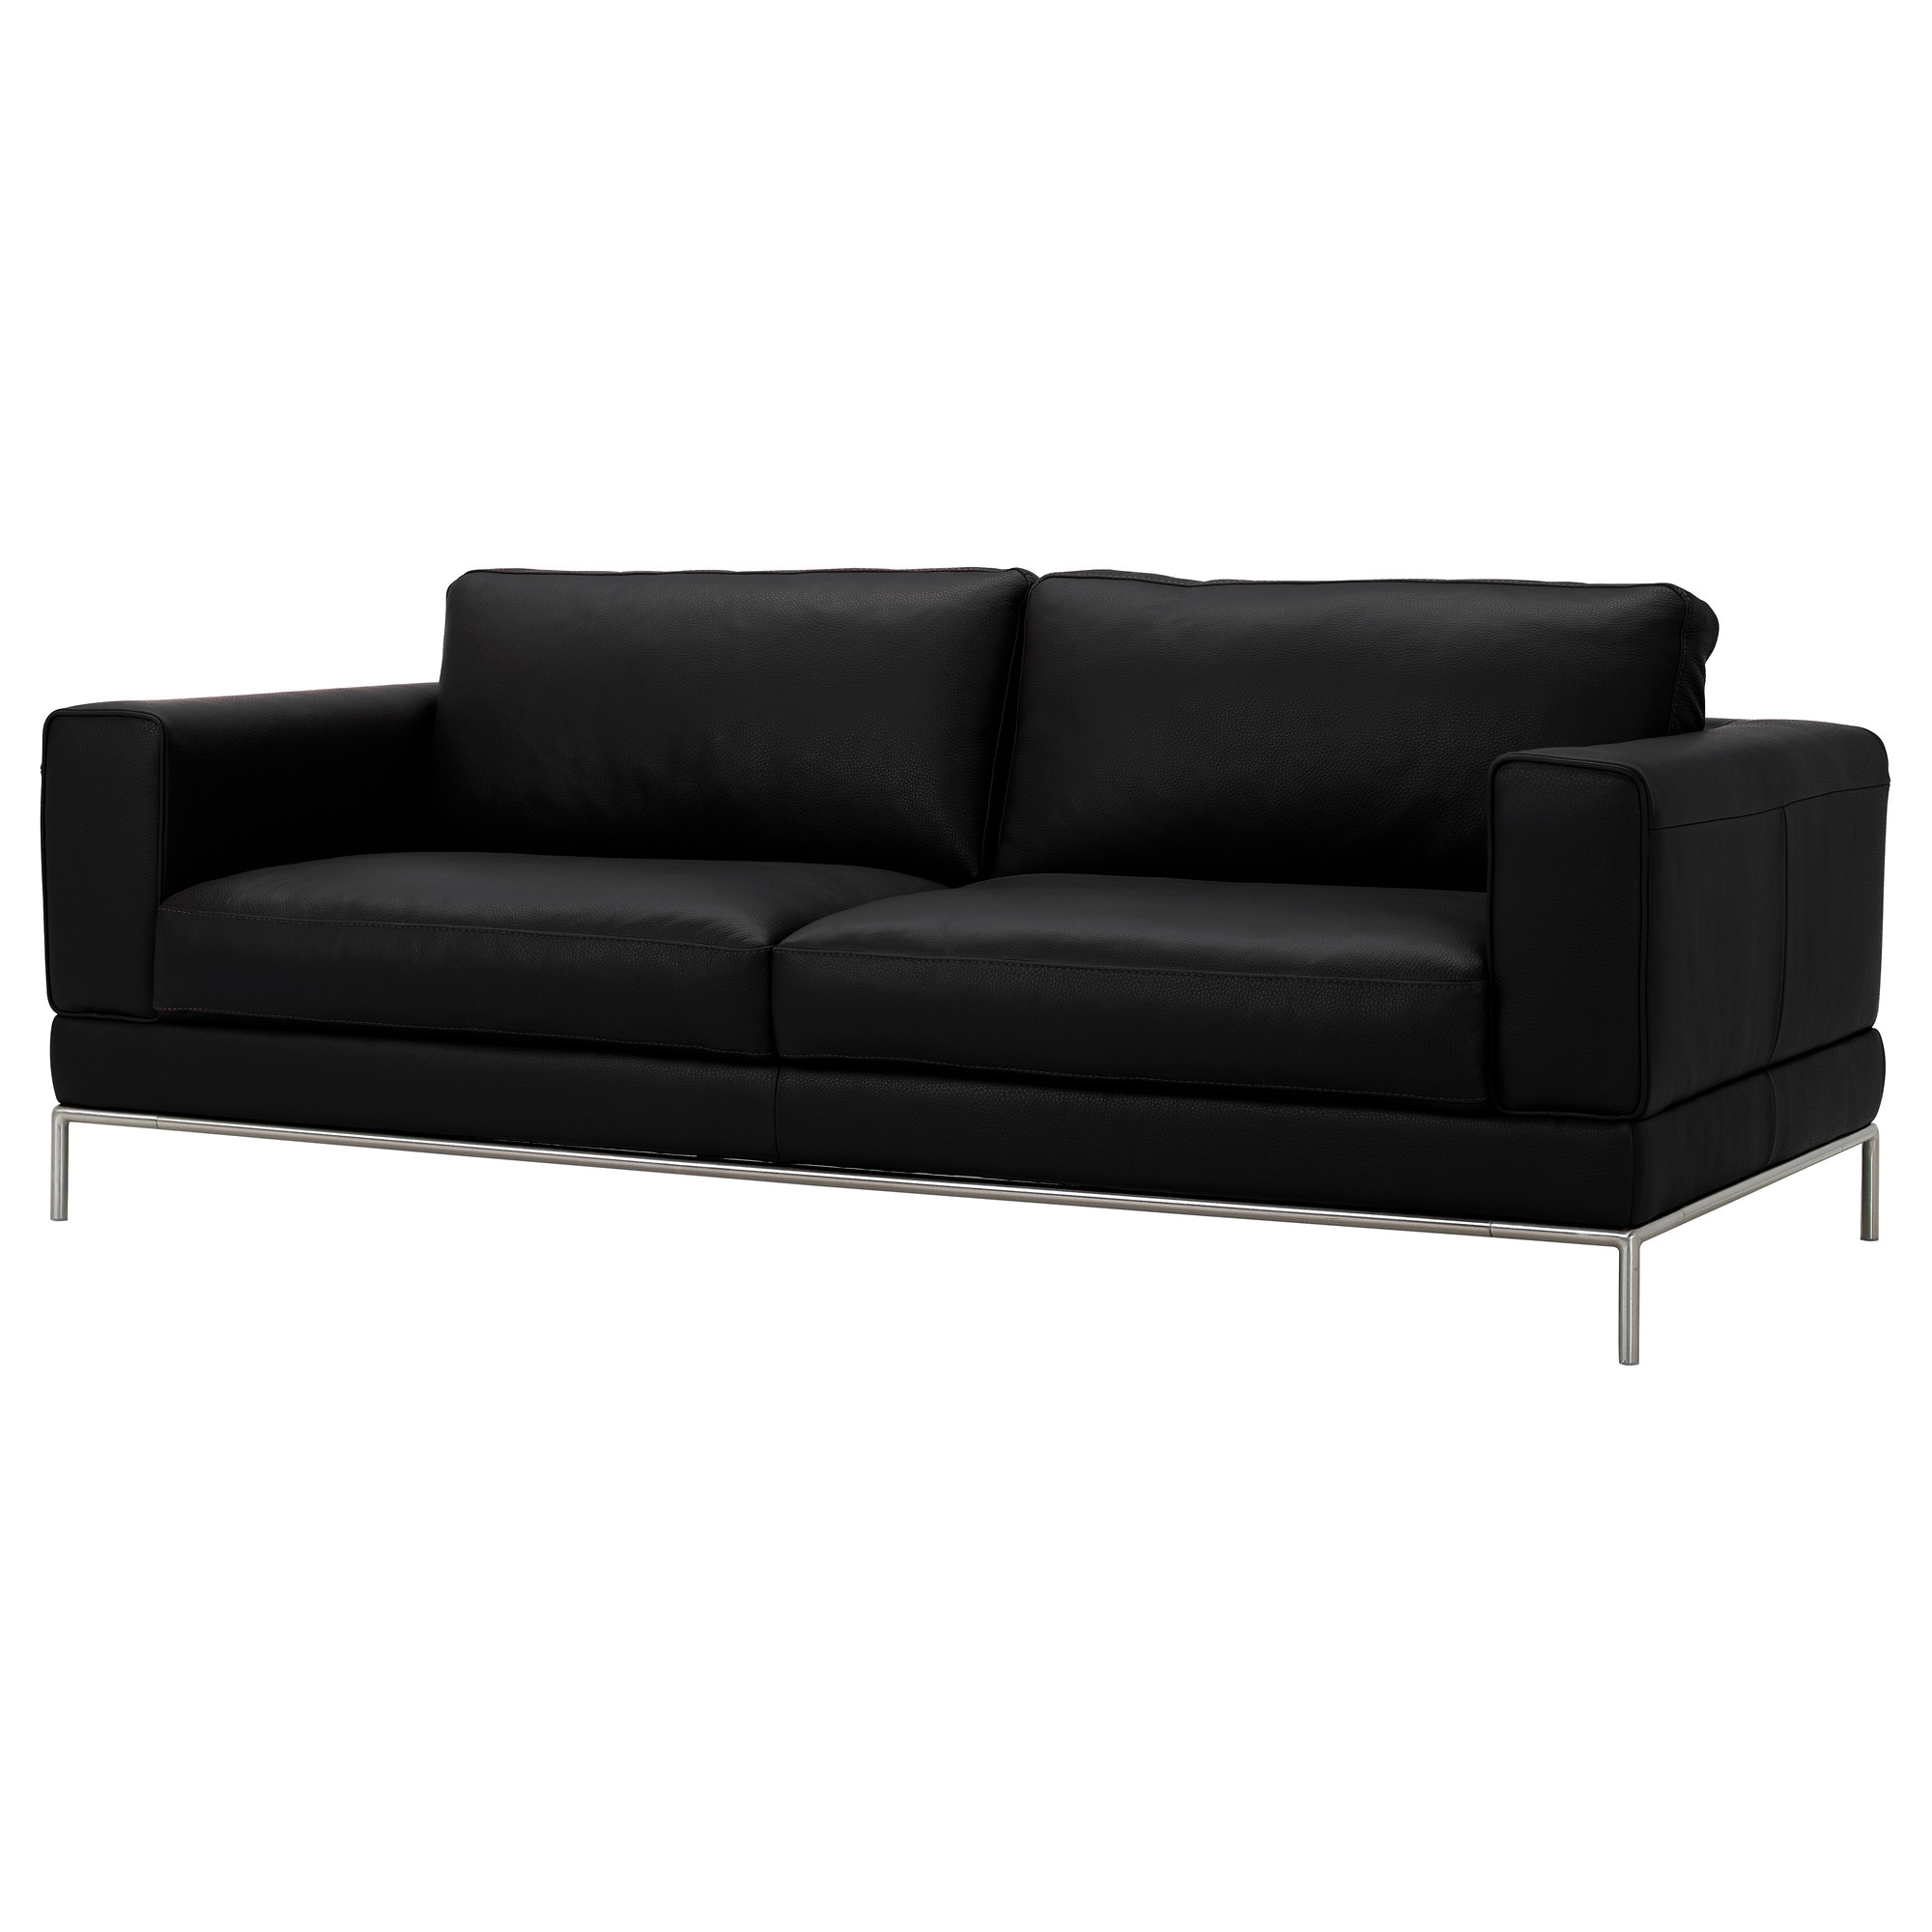 ikea arild sofa ikea arild brown leather sofa in. Black Bedroom Furniture Sets. Home Design Ideas